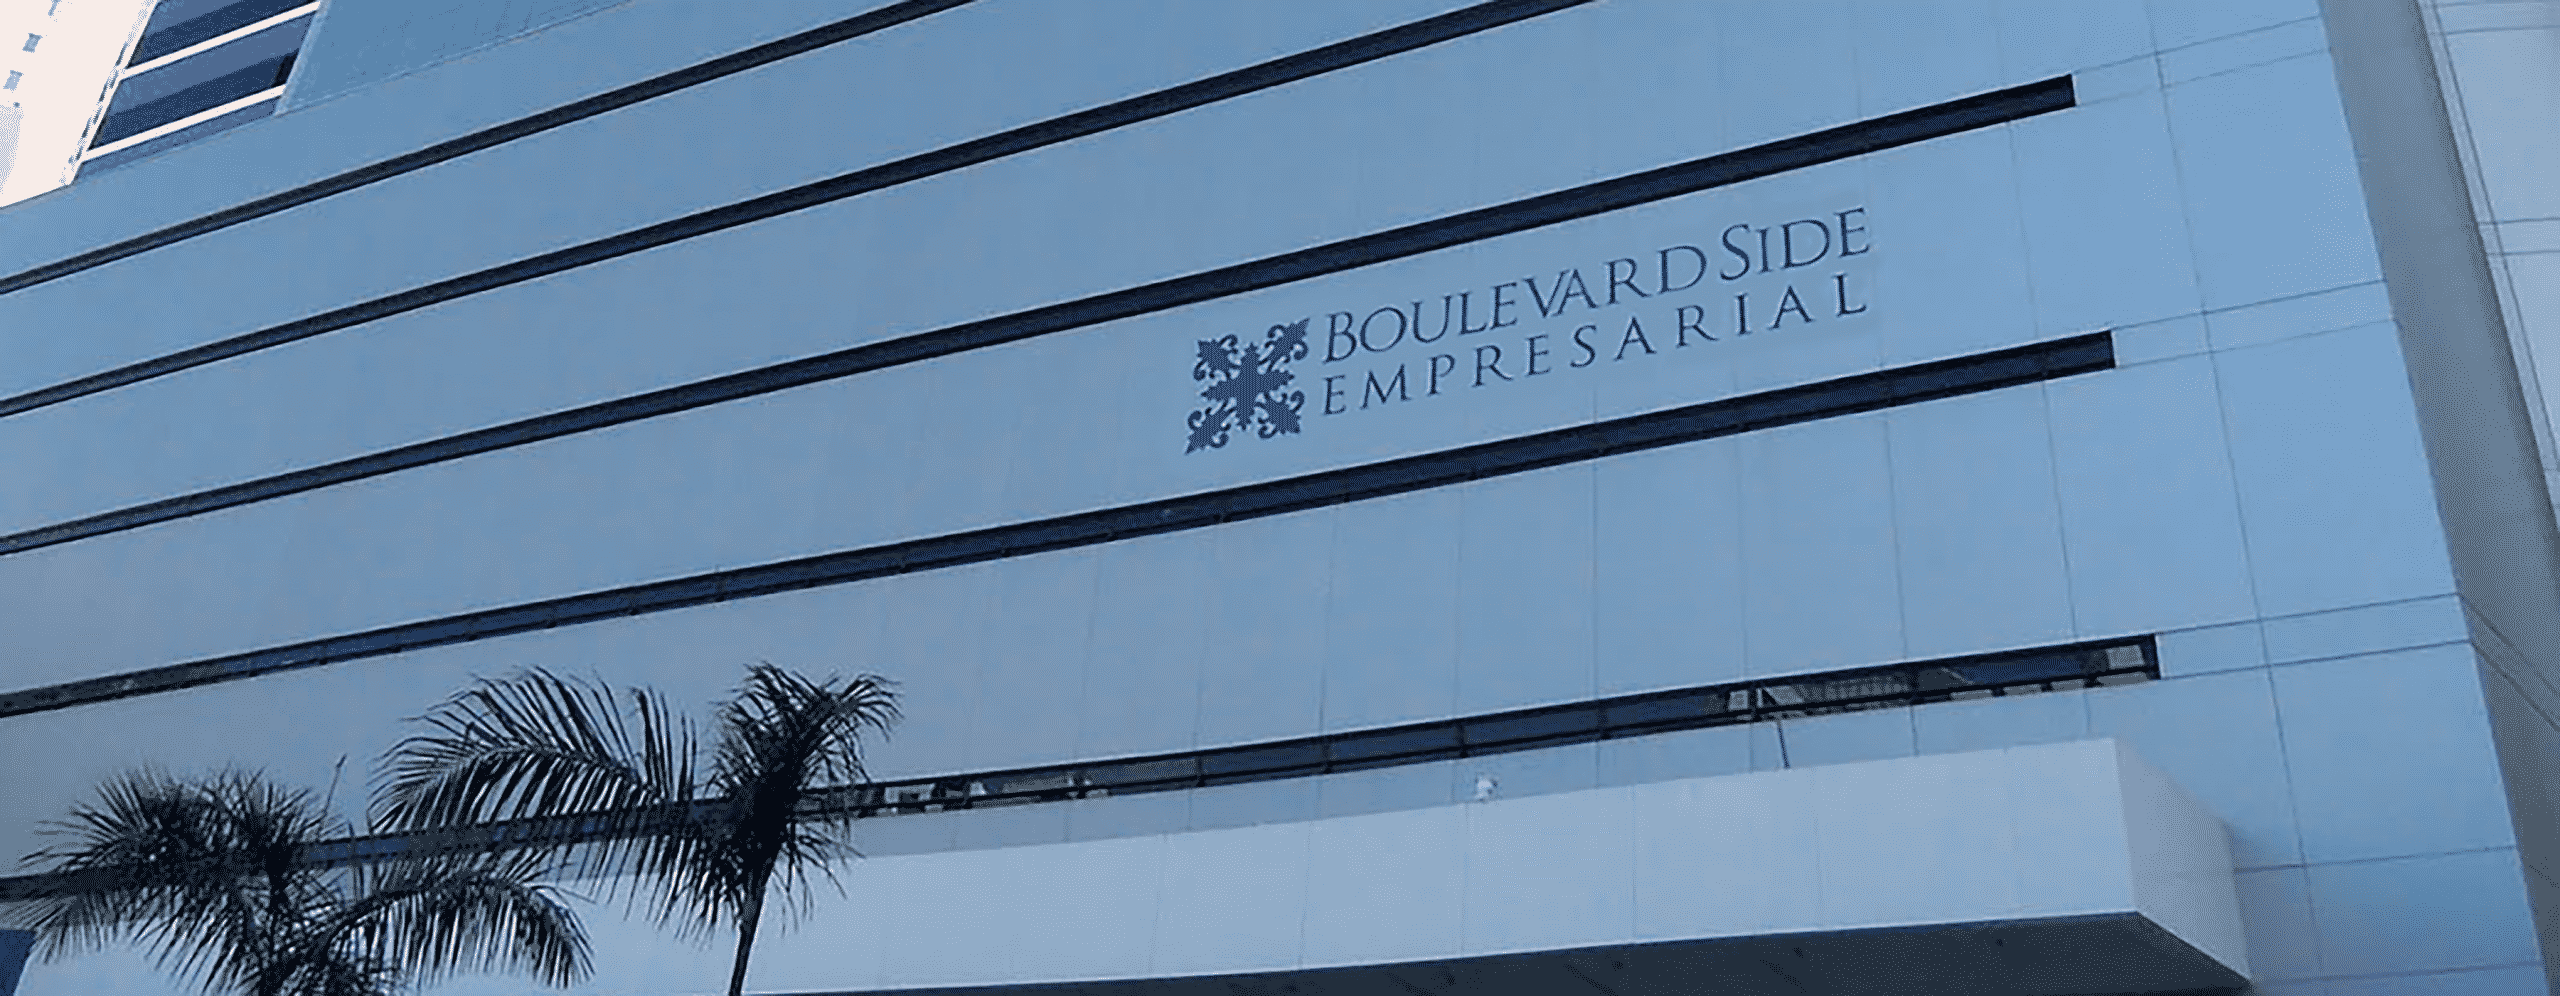 SISQUAL reinforces presence in Brazil with new office in Salvador, Bahia